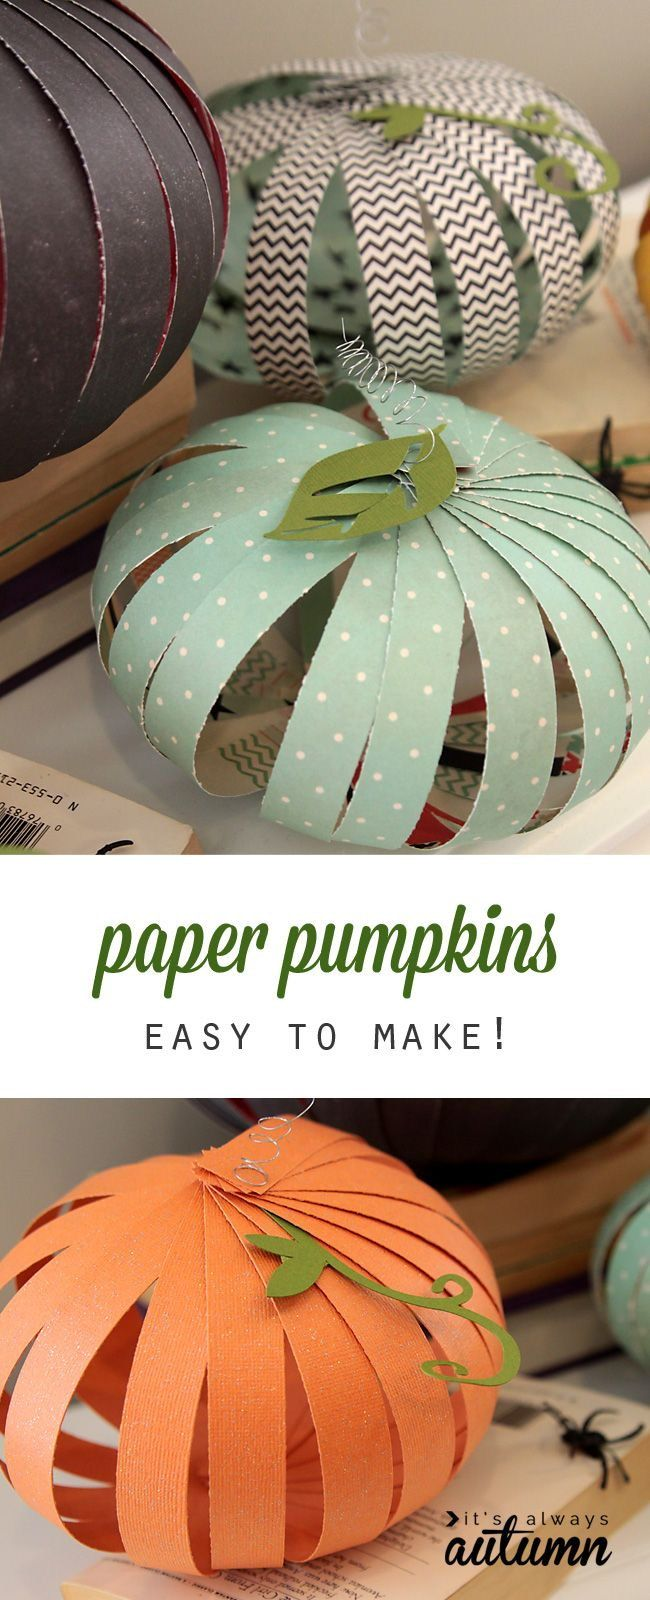 These paper strips pumpkins are cute, inexpensive, and super easy to make. Even kids can do it!